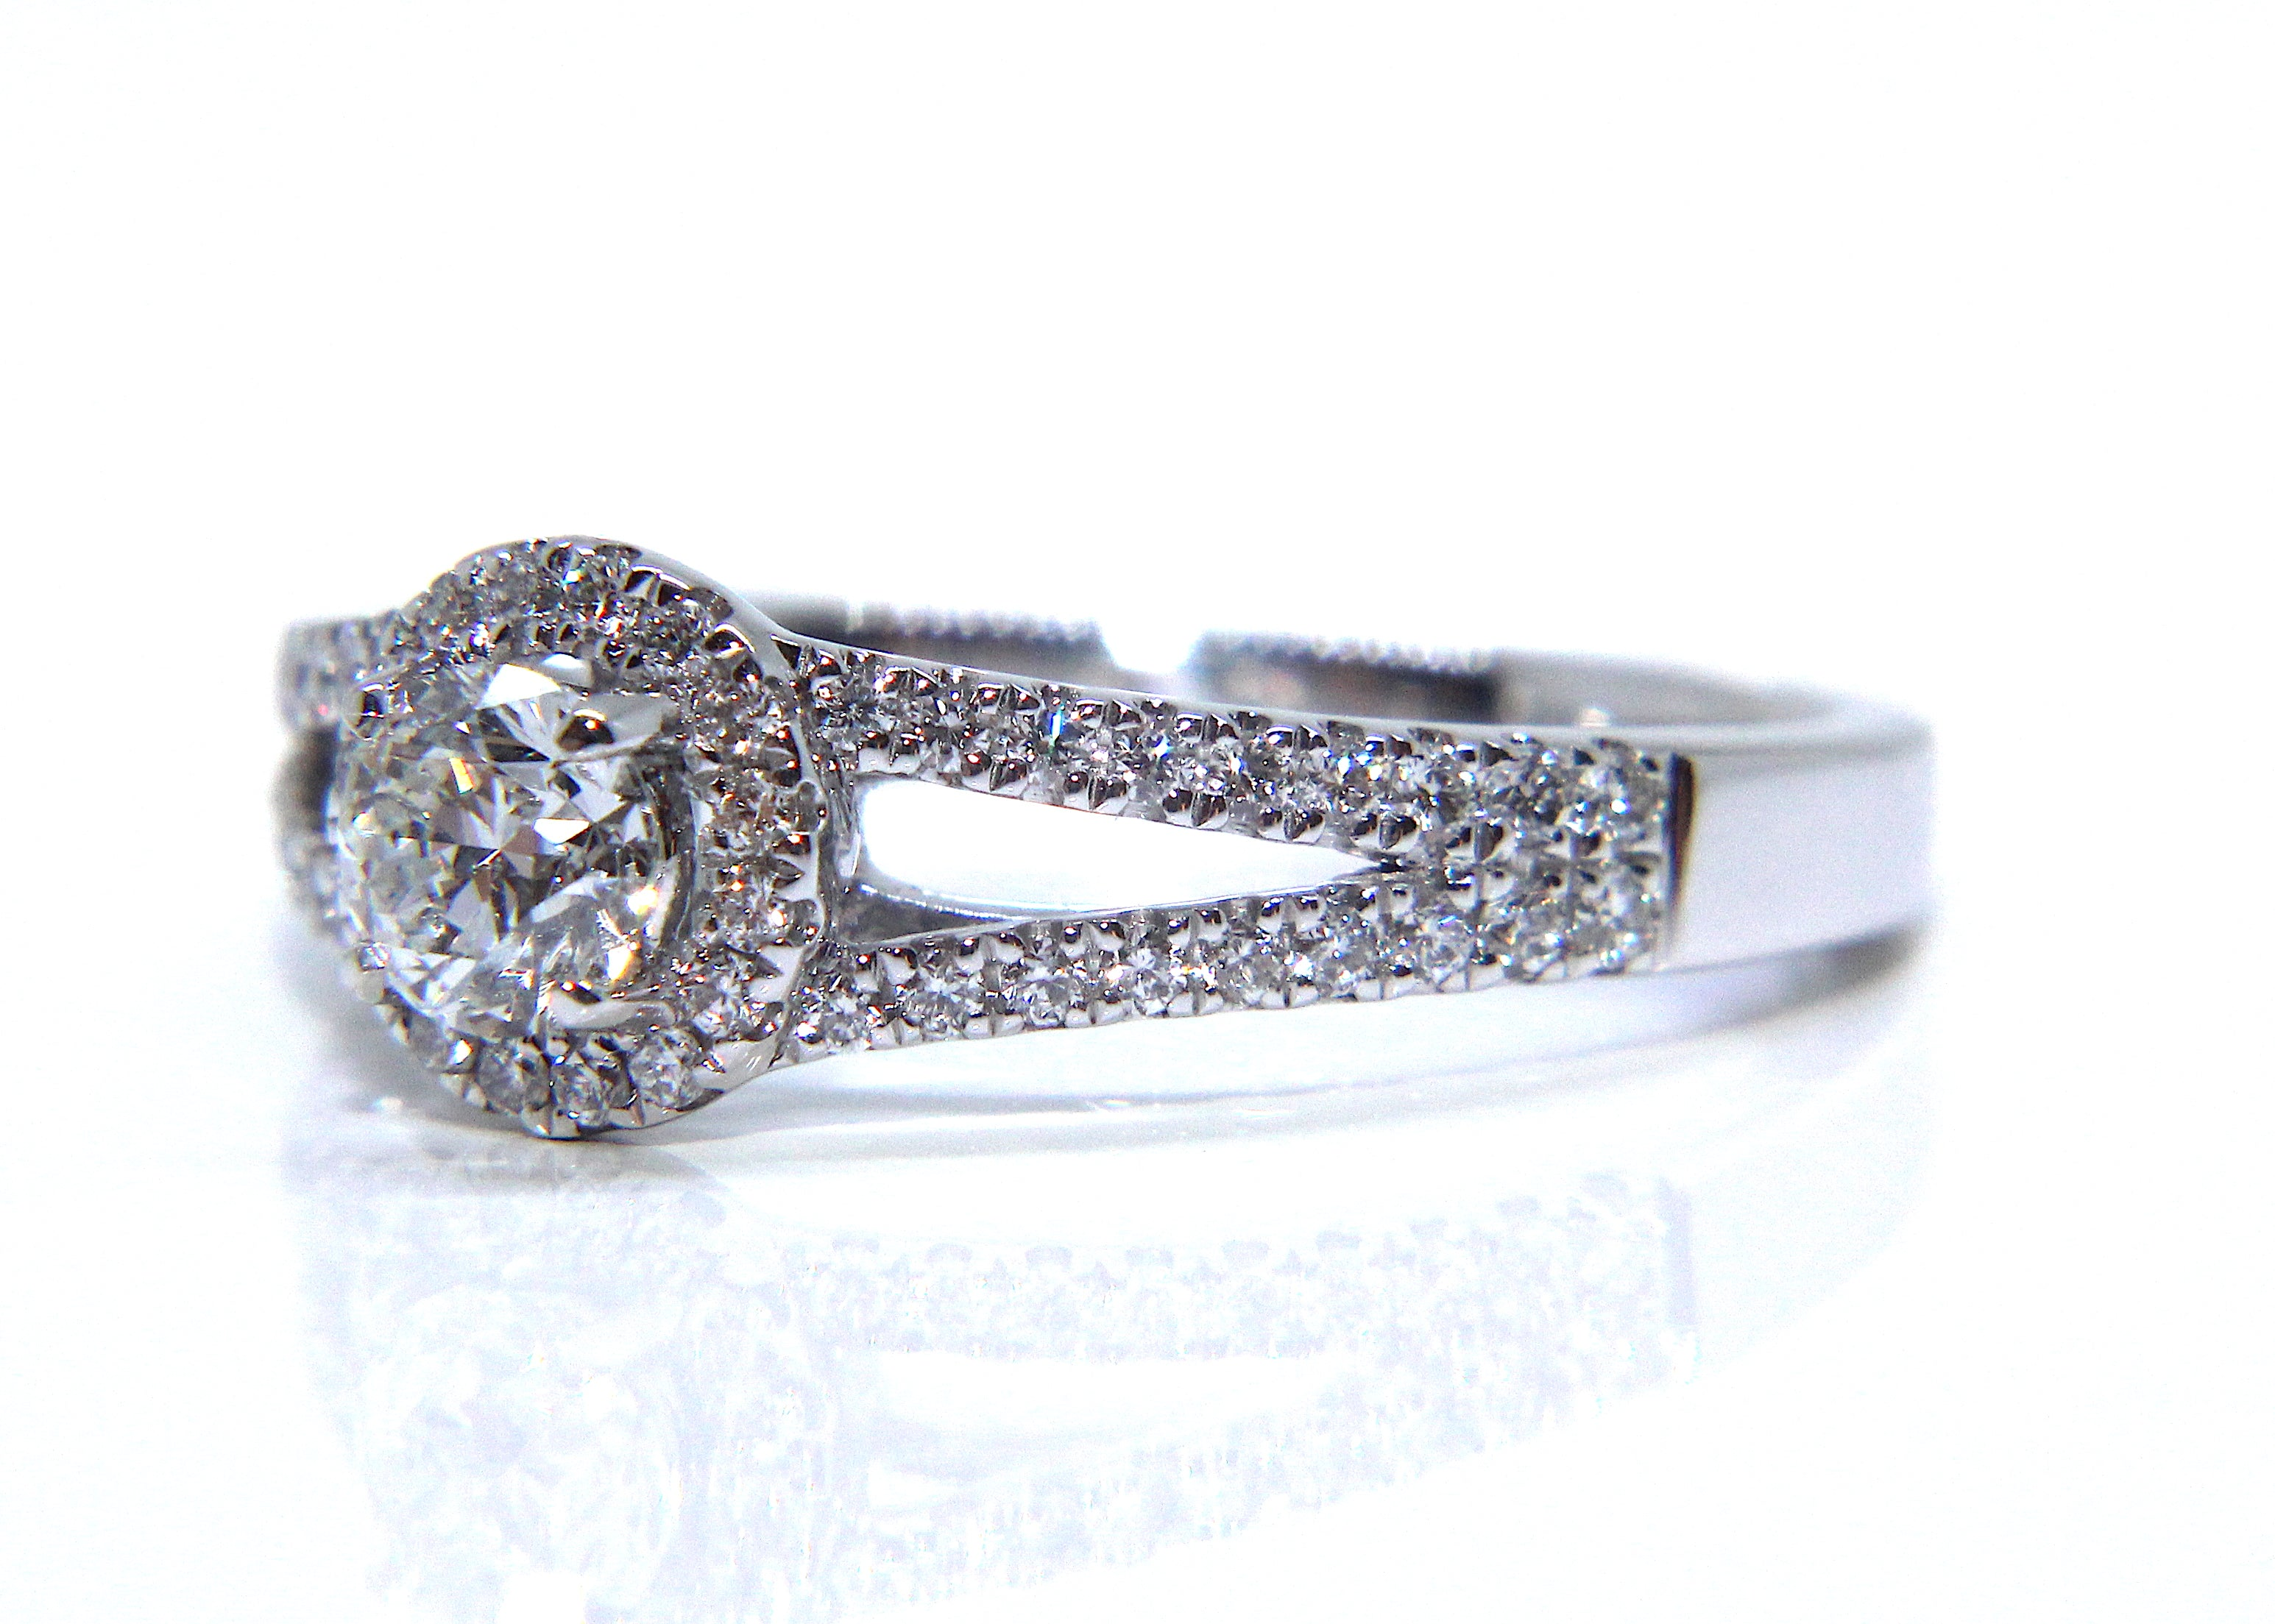 made ring engagement parking rings on diamond finger man products wedding set artemer marquise